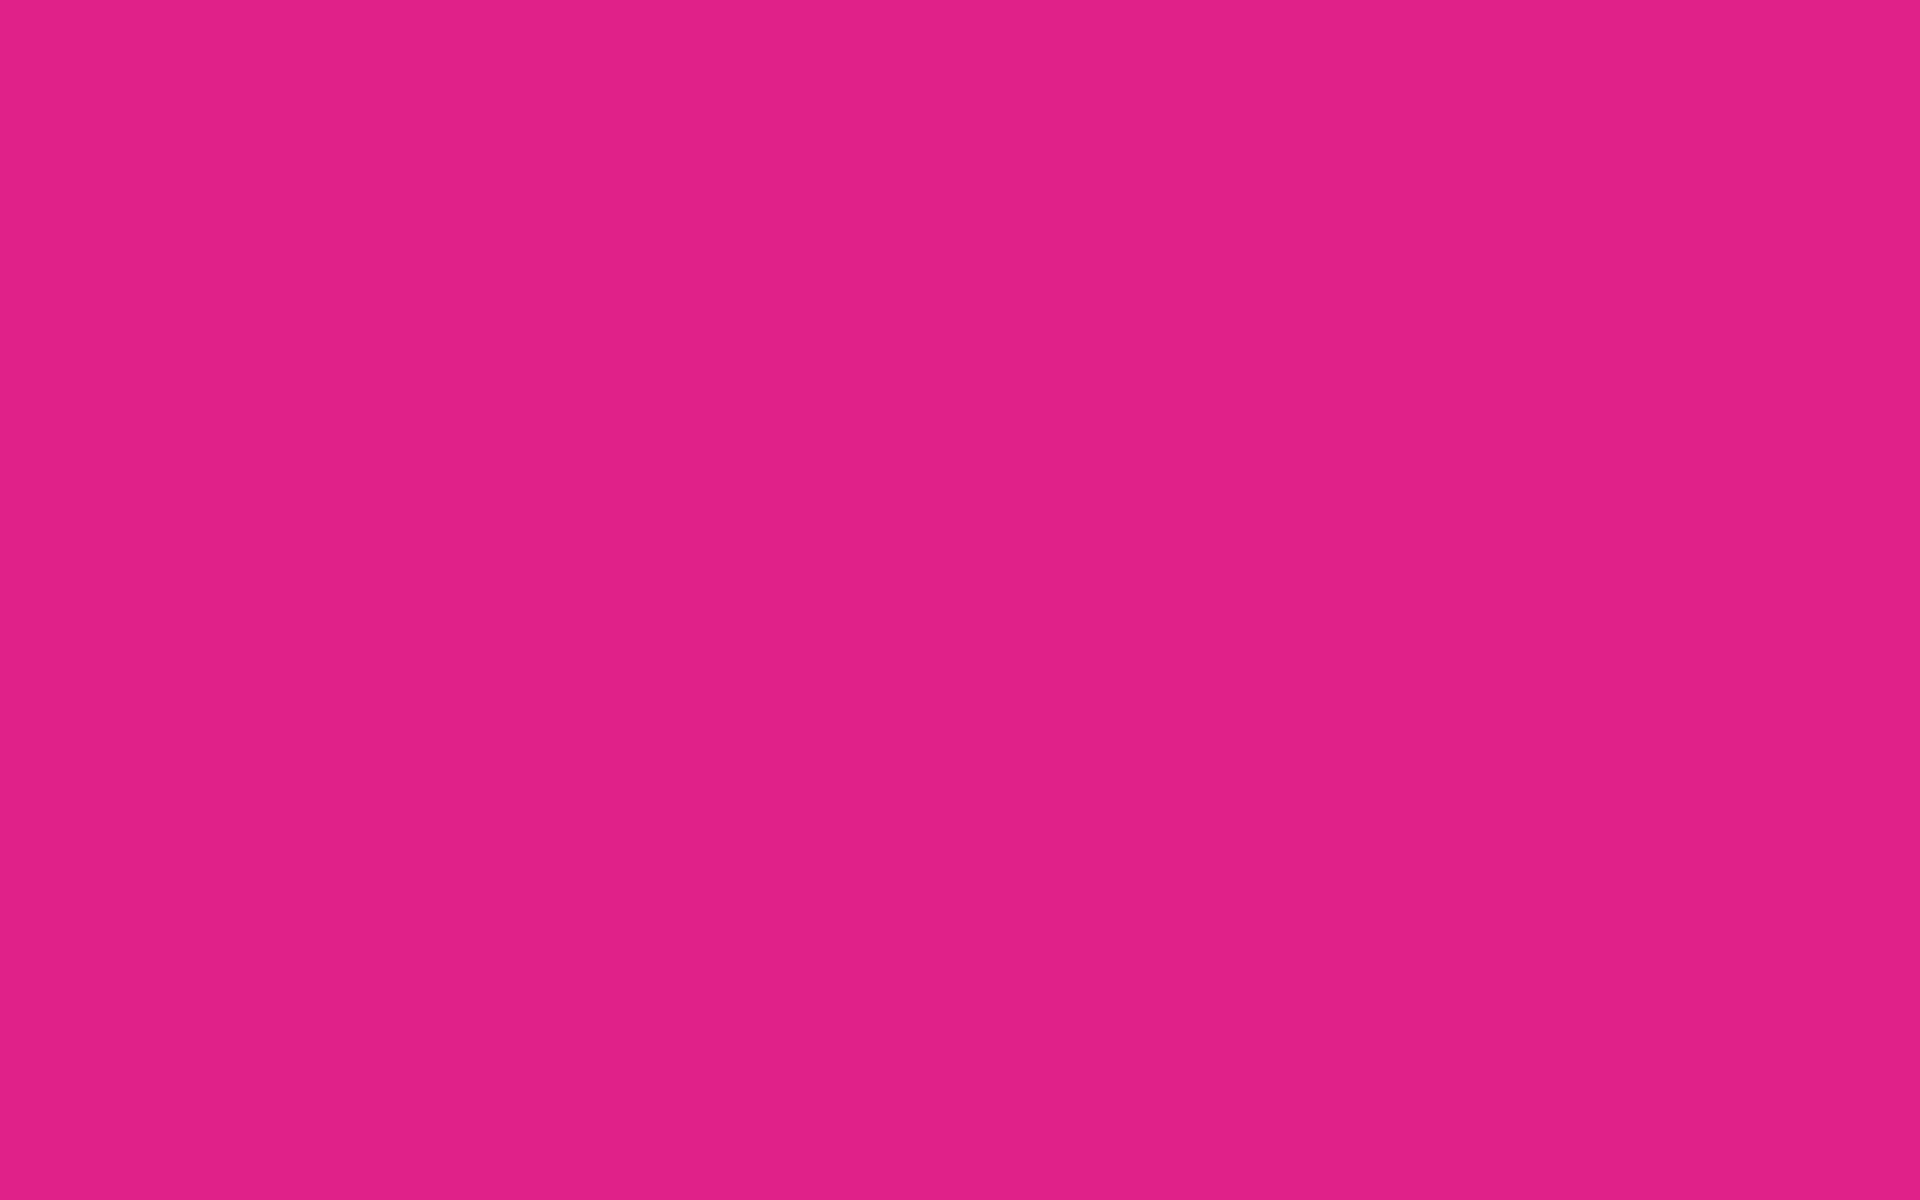 1920x1200 Barbie Pink Solid Color Background